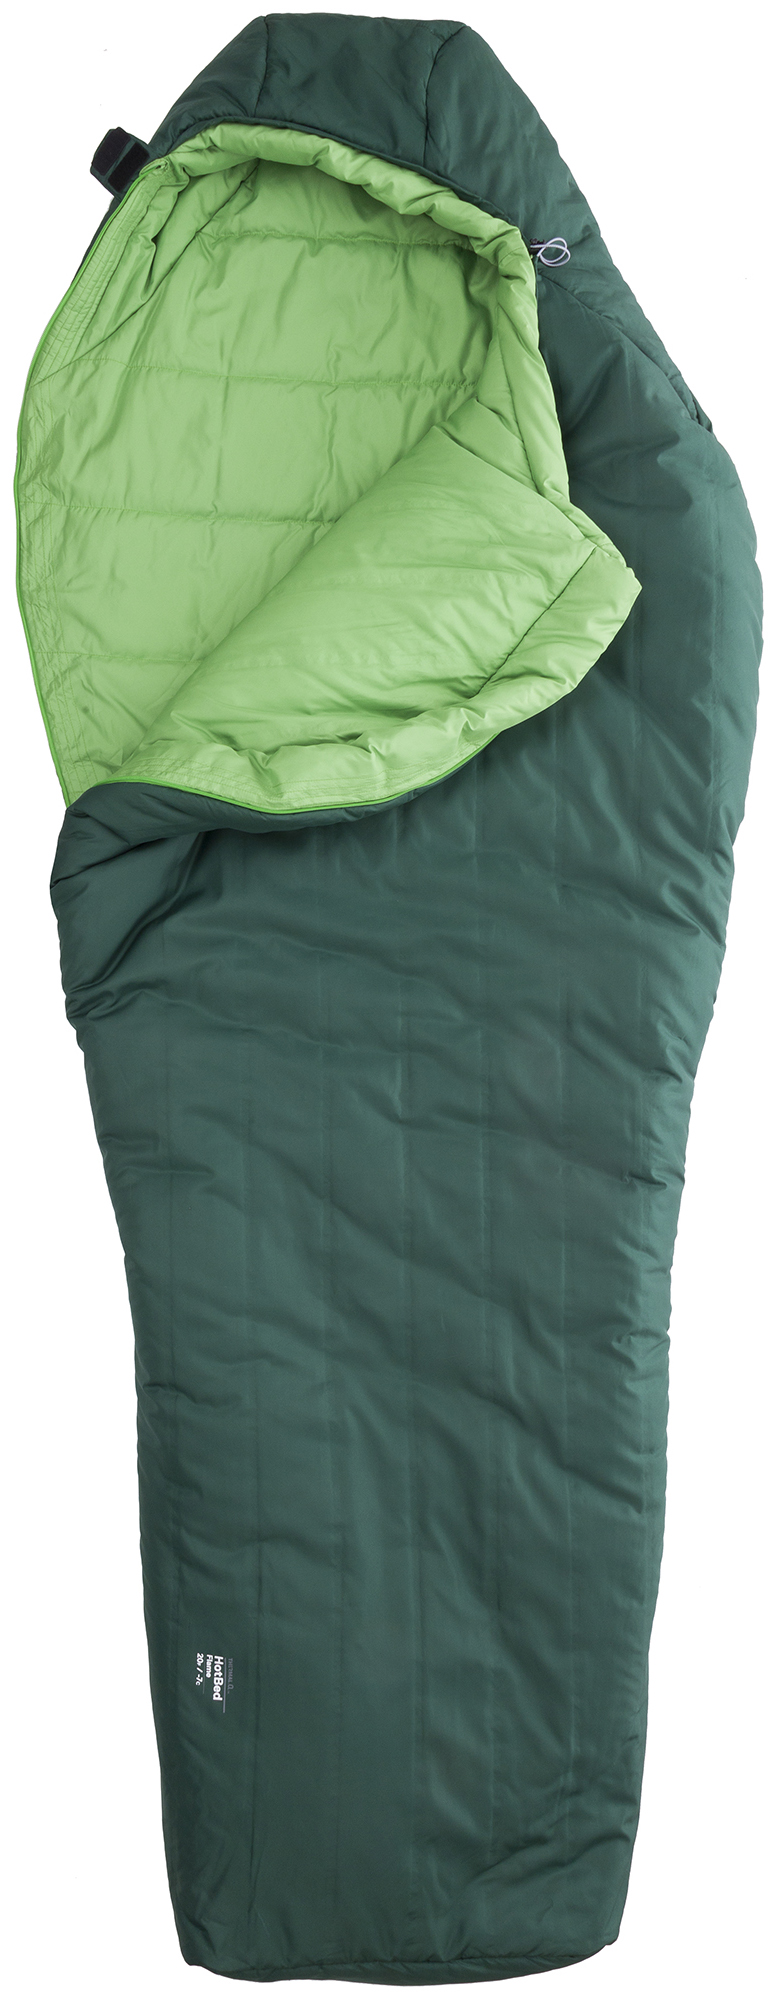 Mountain Hardwear Mountain Hardwear Hotbed Flame Sleeping Bag, размер 198